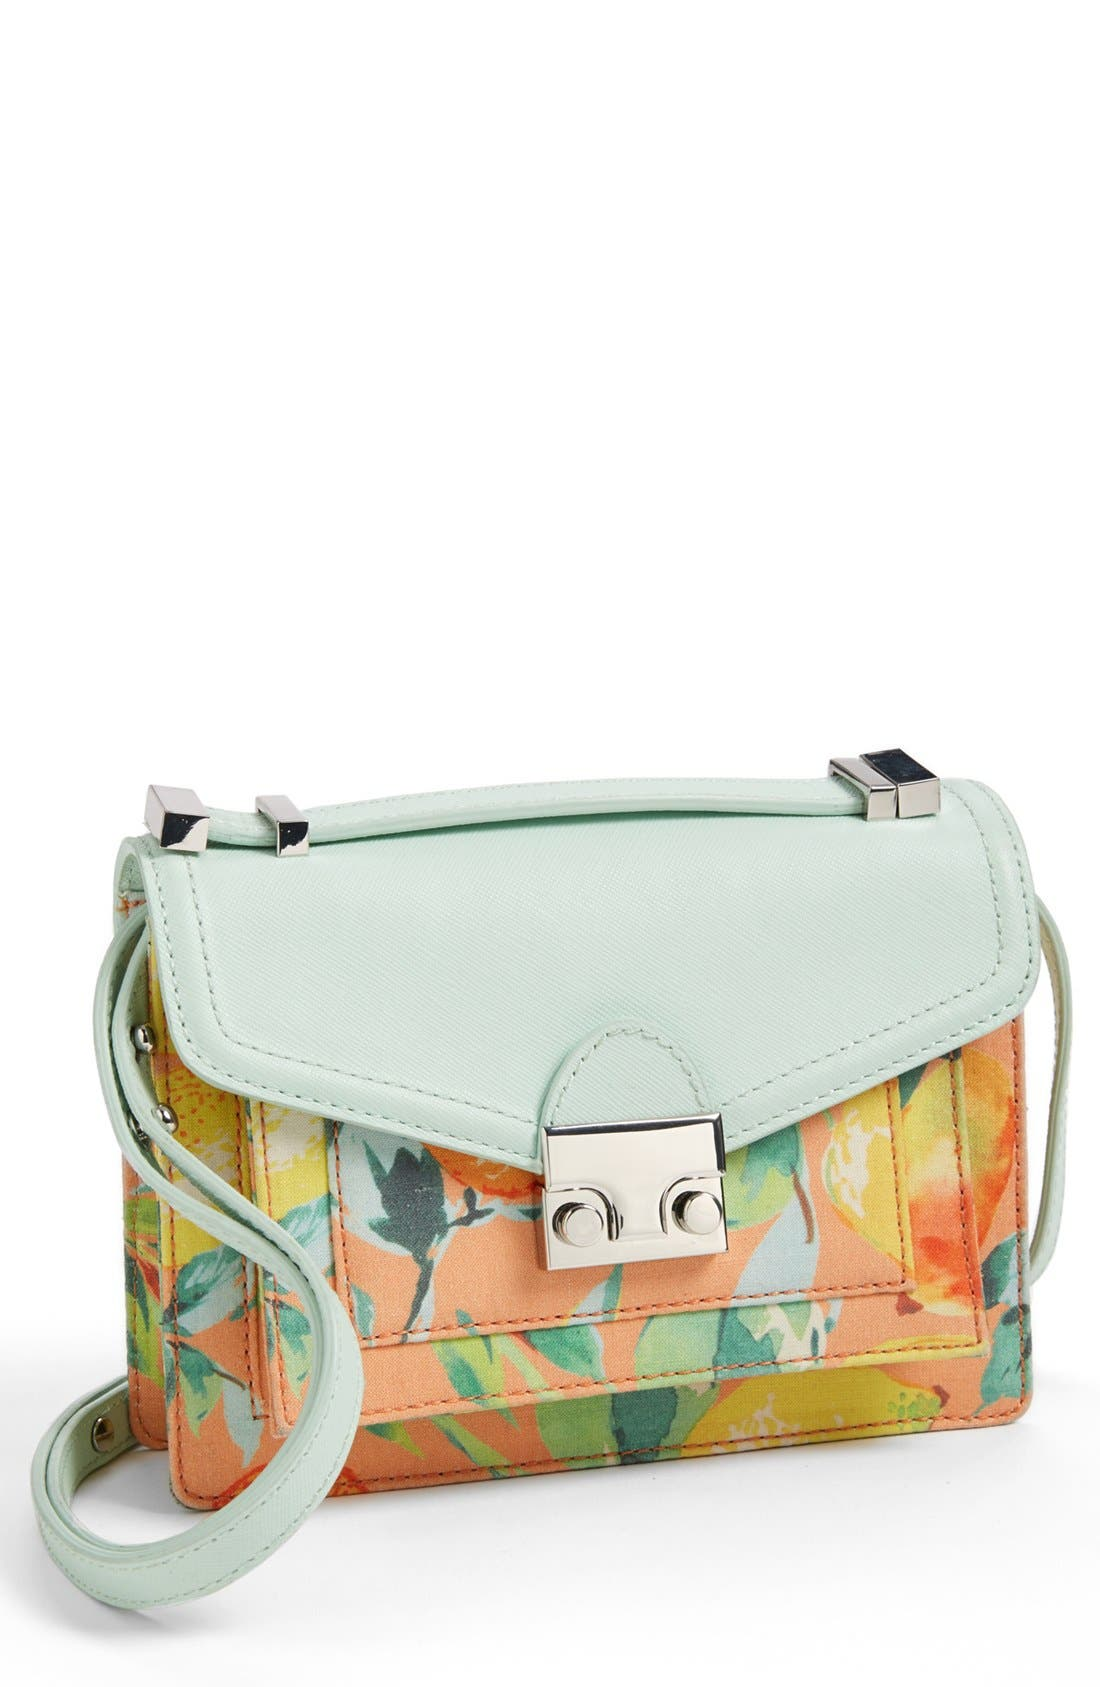 Alternate Image 1 Selected - Loeffler Randall 'Rider - Mini' Leather Crossbody Bag